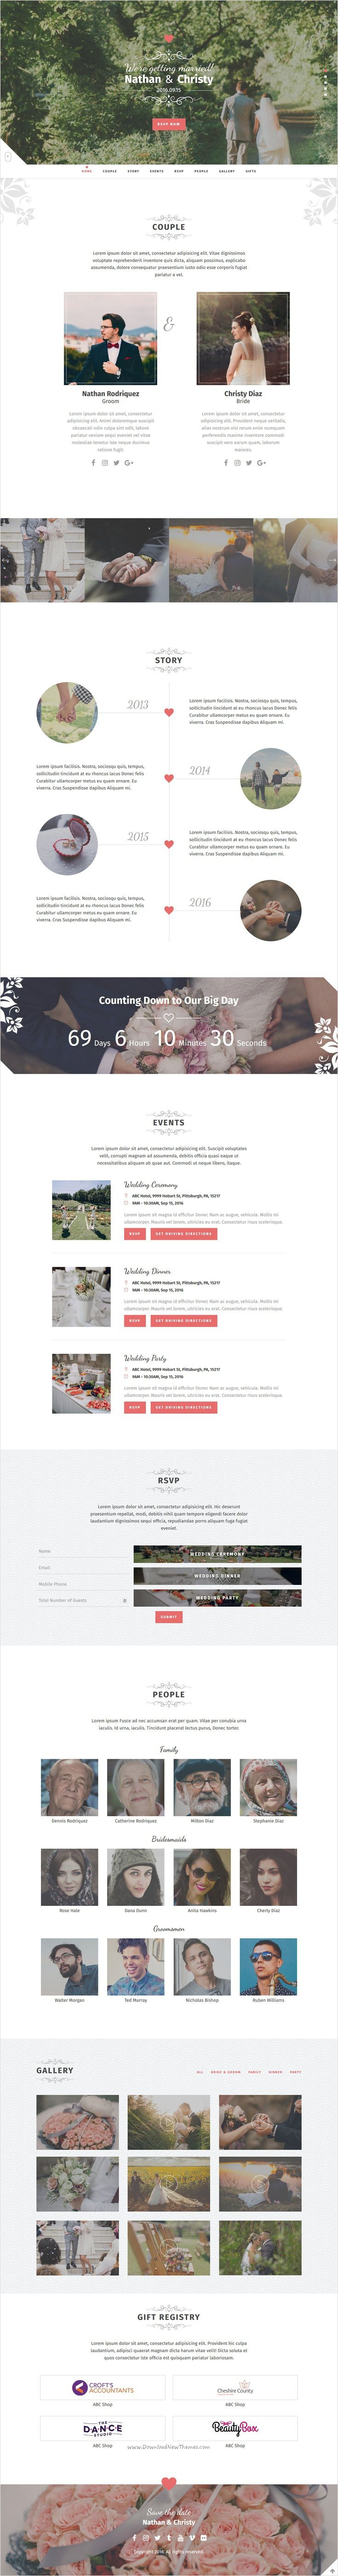 Best 25 invitation websites ideas on pinterest diy wedding big day a modern onepage wedding template invitation websitesbootstrap templatewedding templateswedding stopboris Image collections